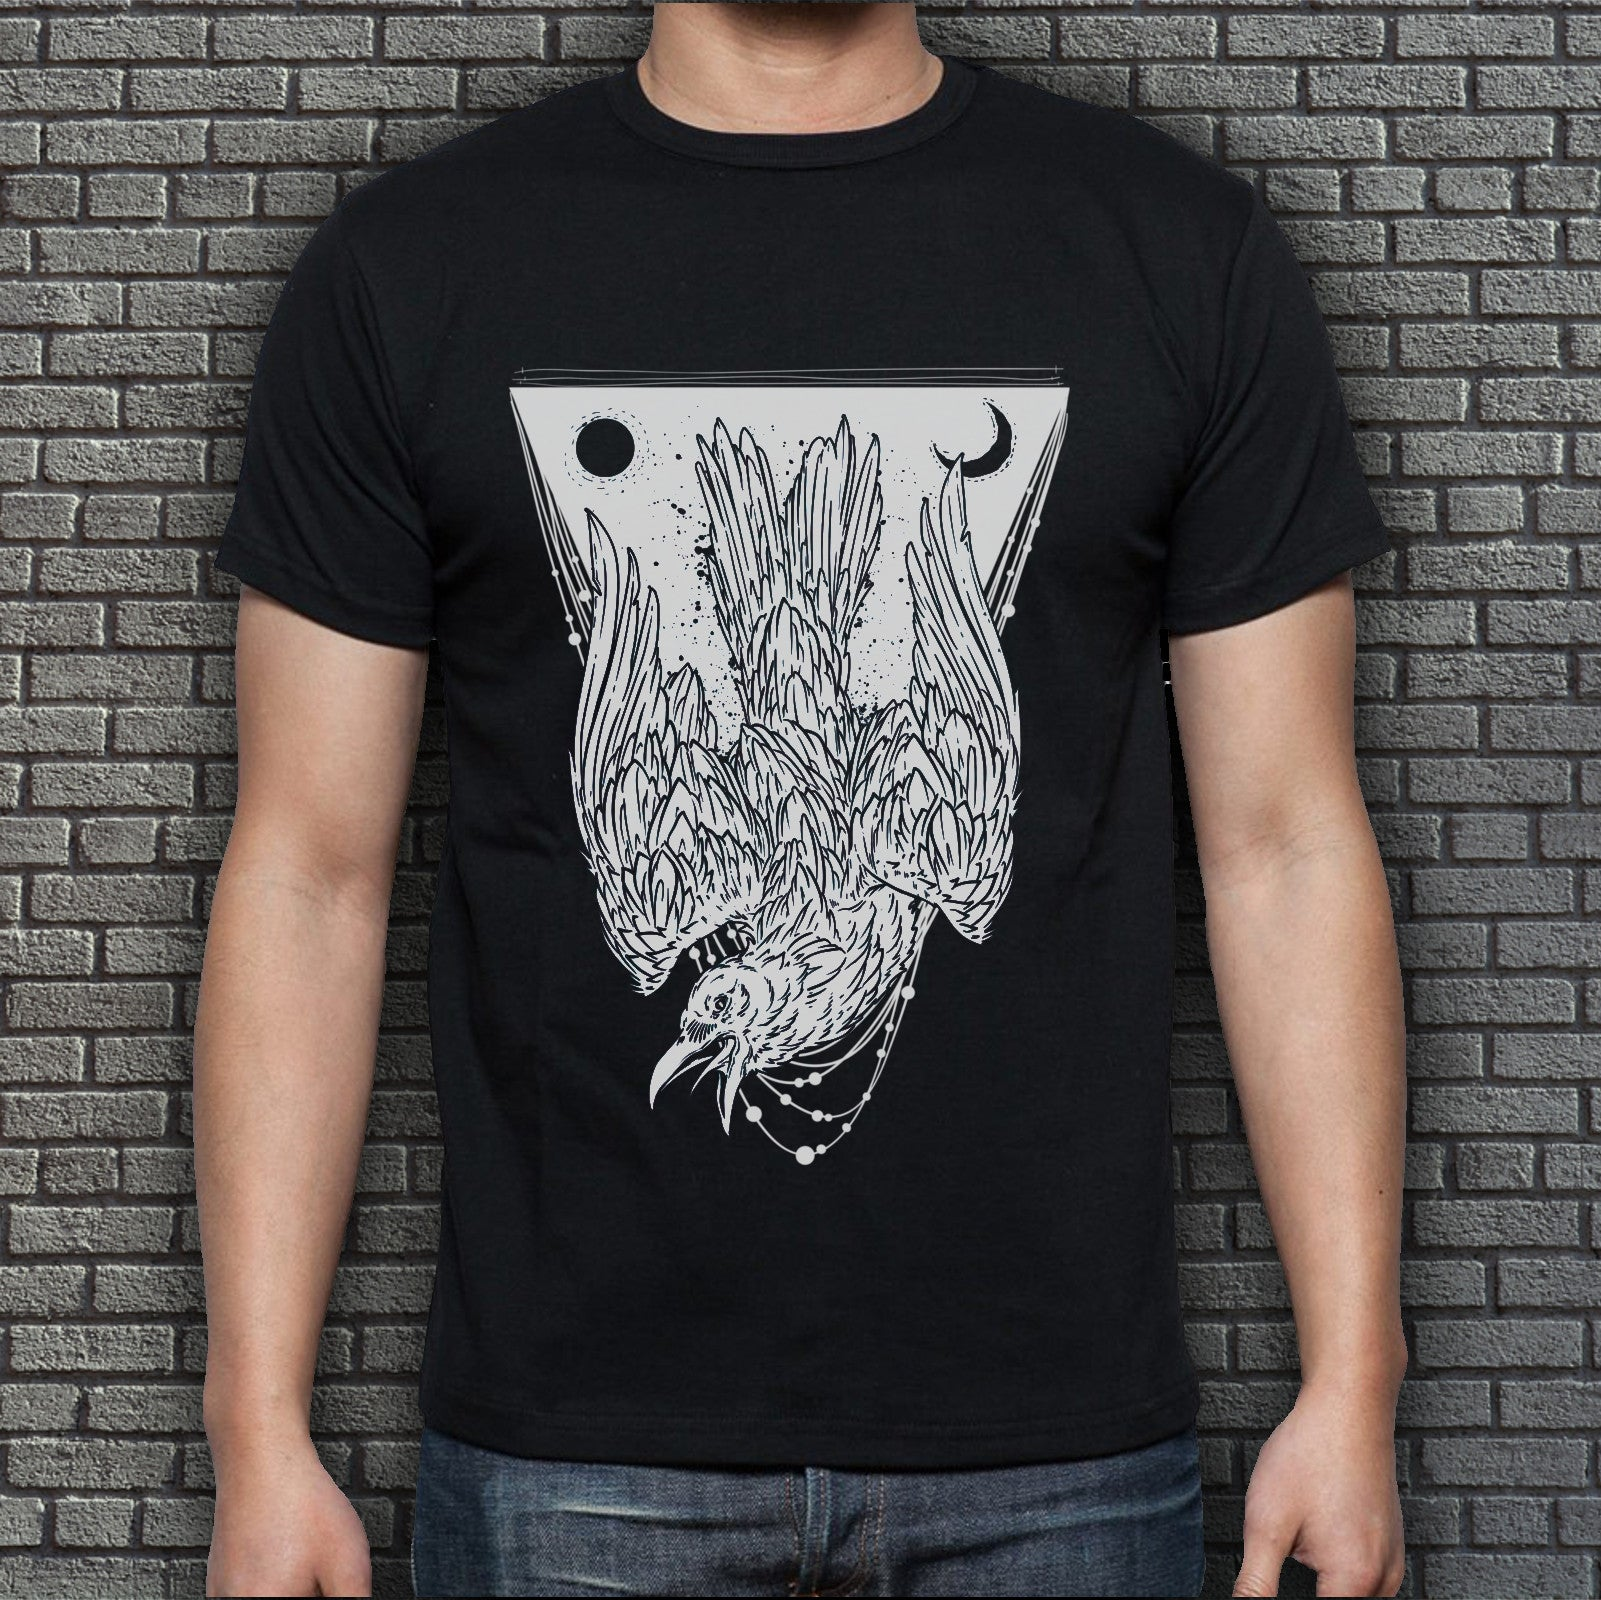 Black Men's Crow T-Shirt